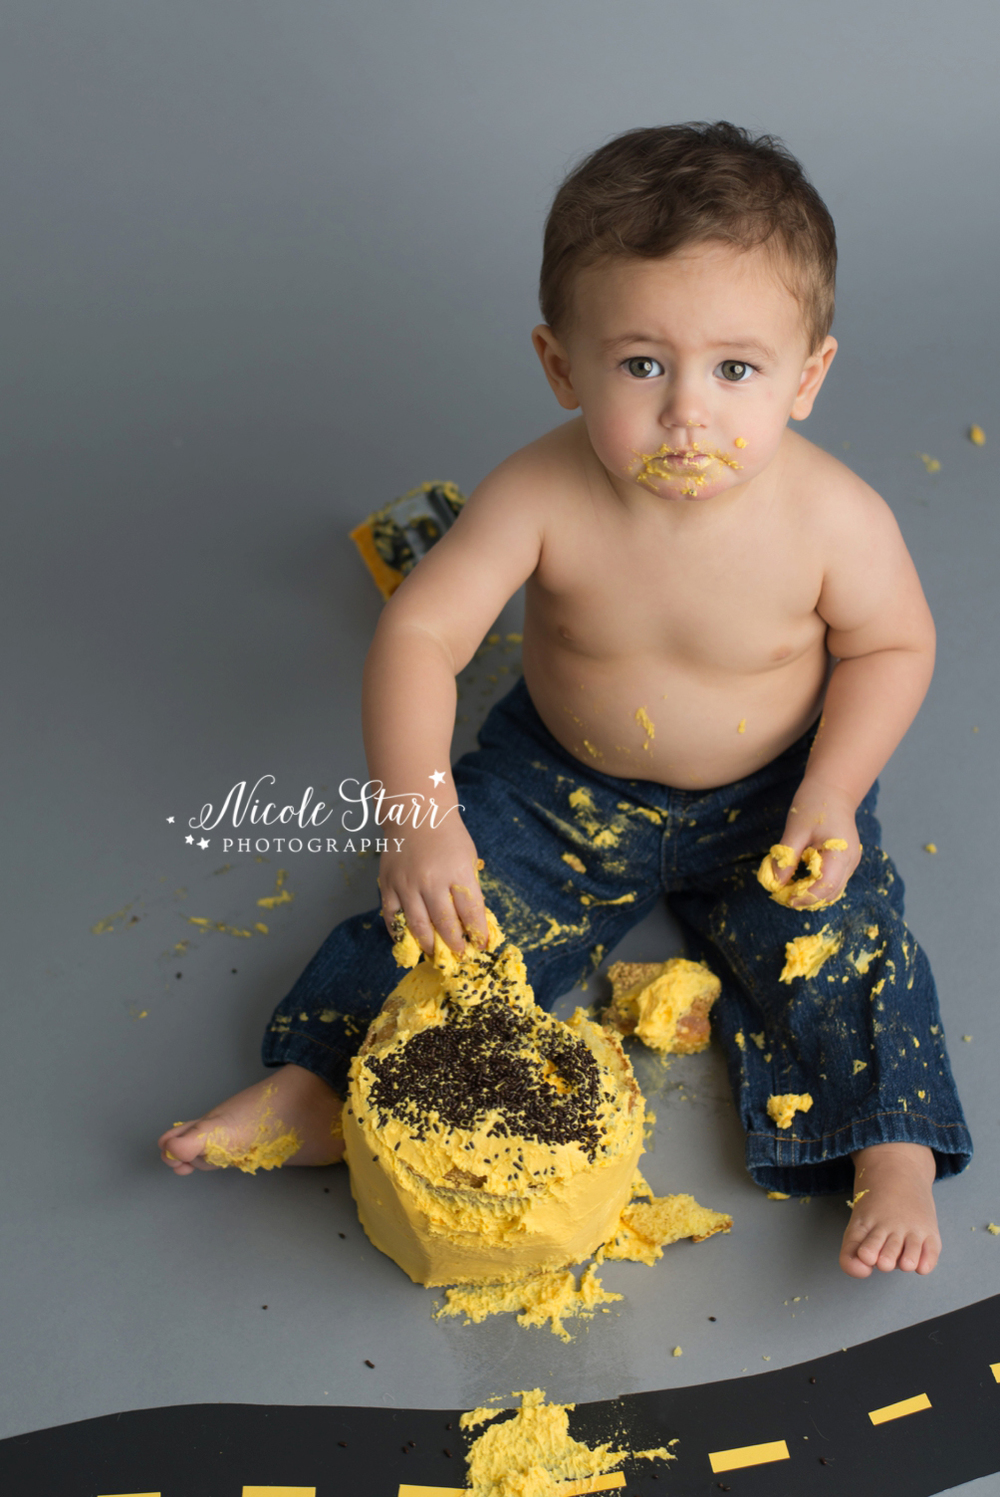 upstate new york saratoga albany cake smash first birthday baby photographer_0015.jpg